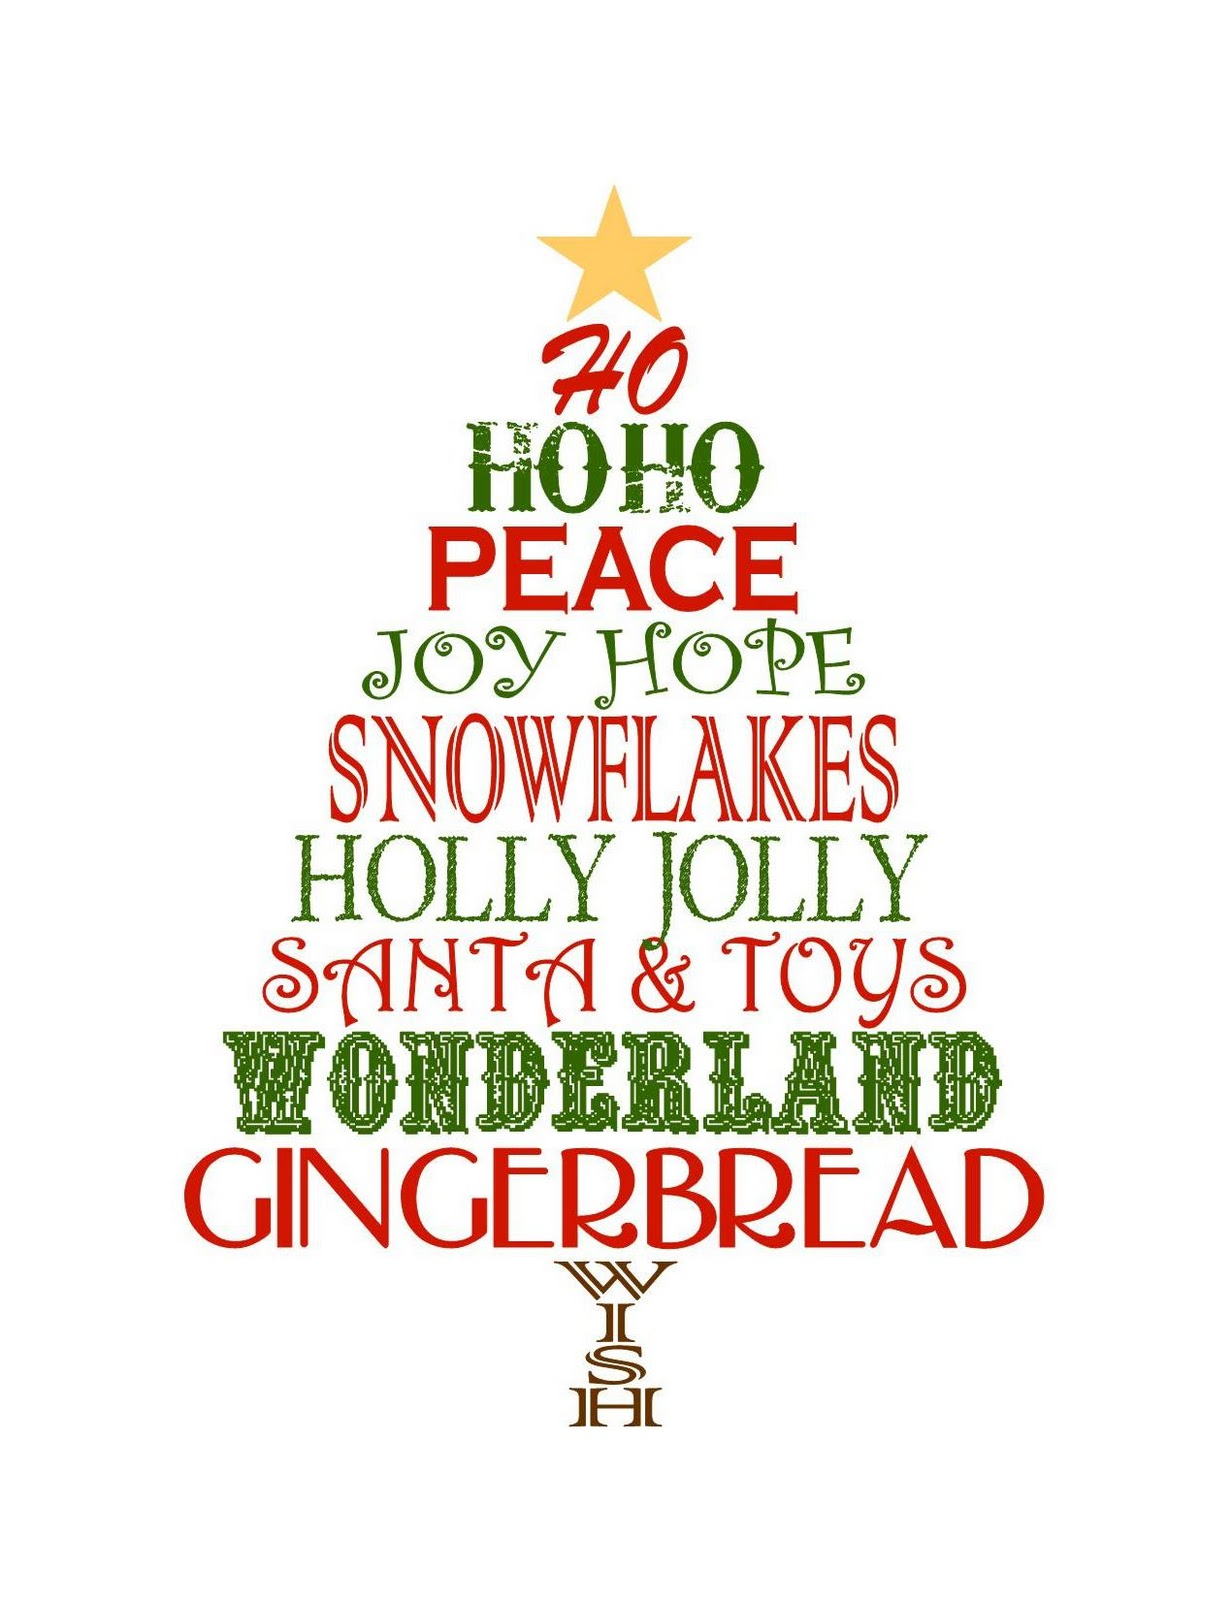 free christmas printables to use as decor - Christmas Card Print Out